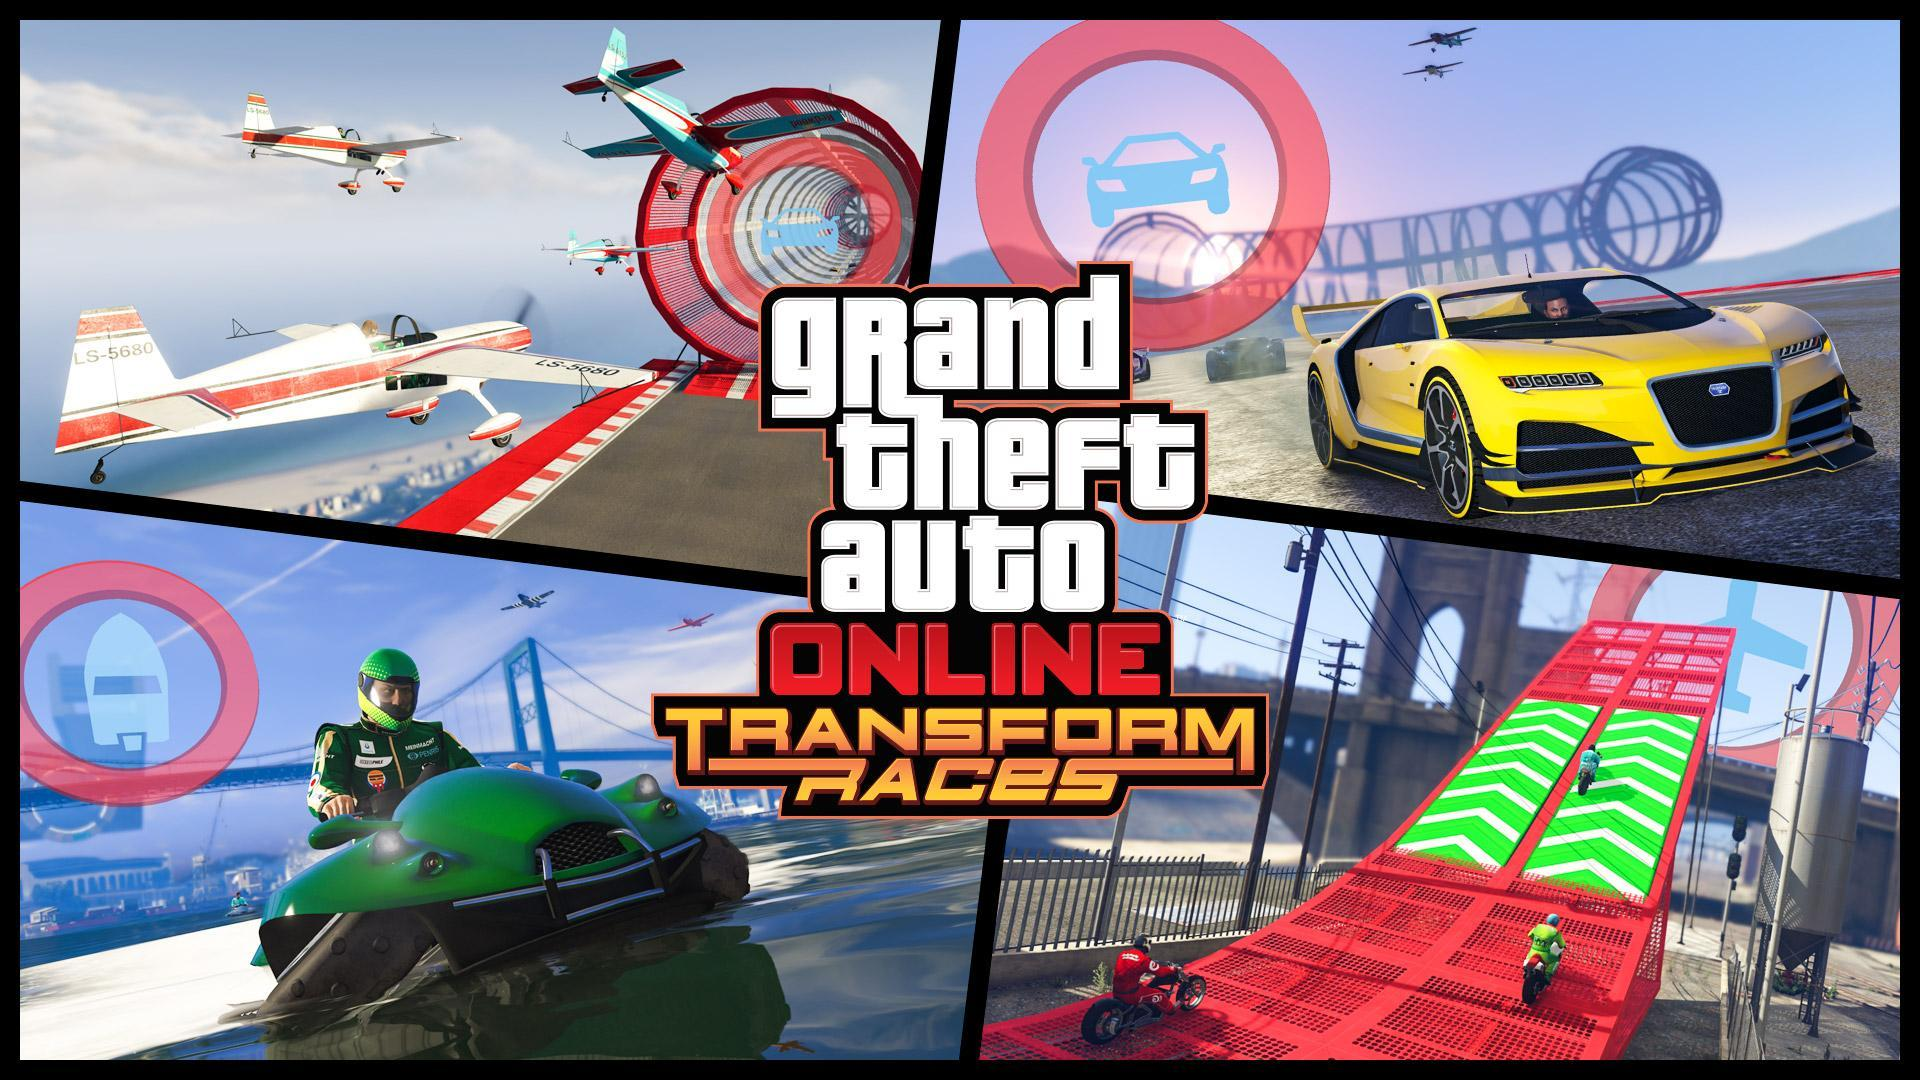 GTA Online: Transform Races Trailer - Coming October 17